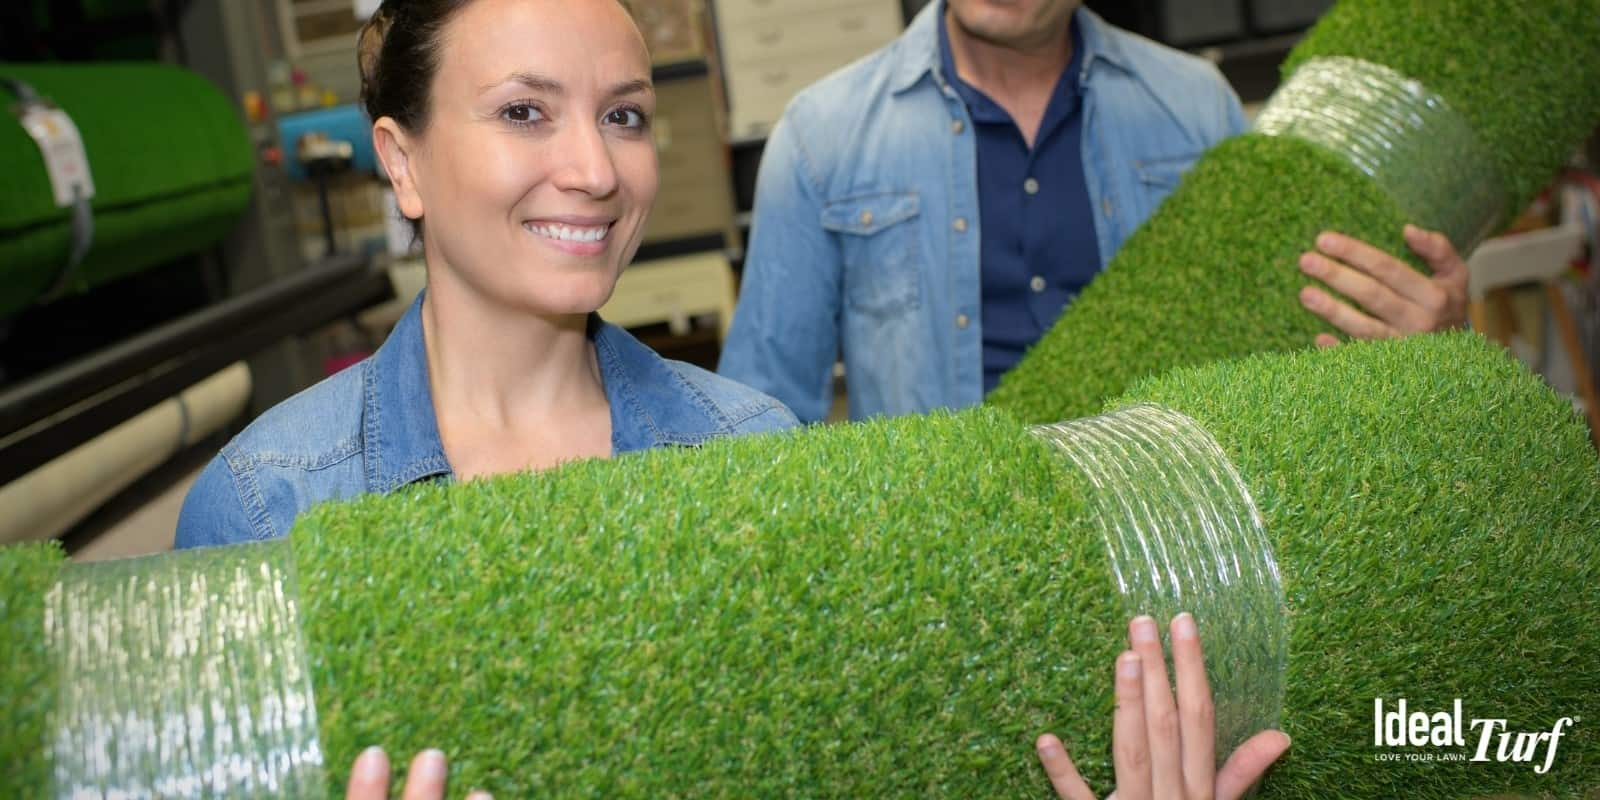 Man and woman carrying rolls of artificial grass